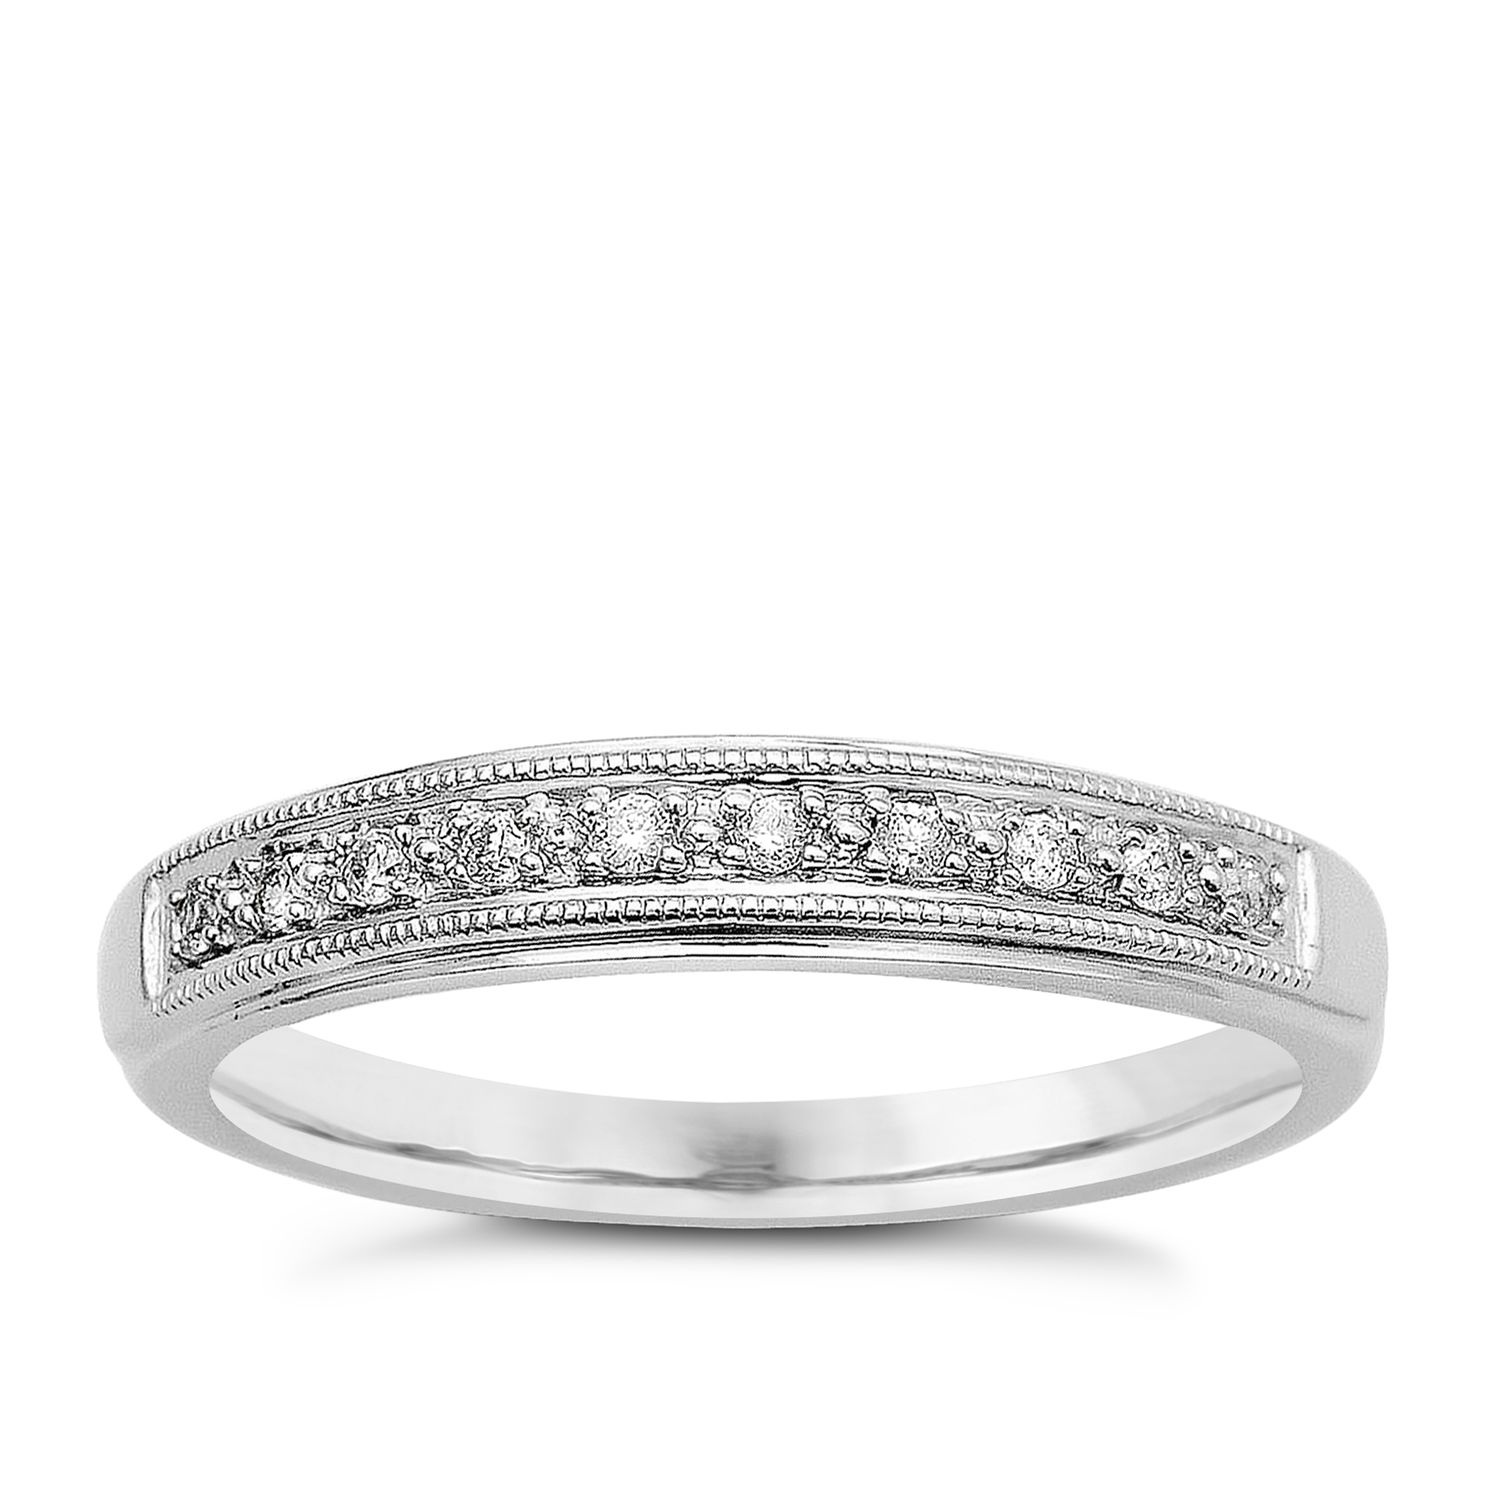 Perfect Fit 9ct White Gold & Diamond Eternity Ring - Product number 9439374